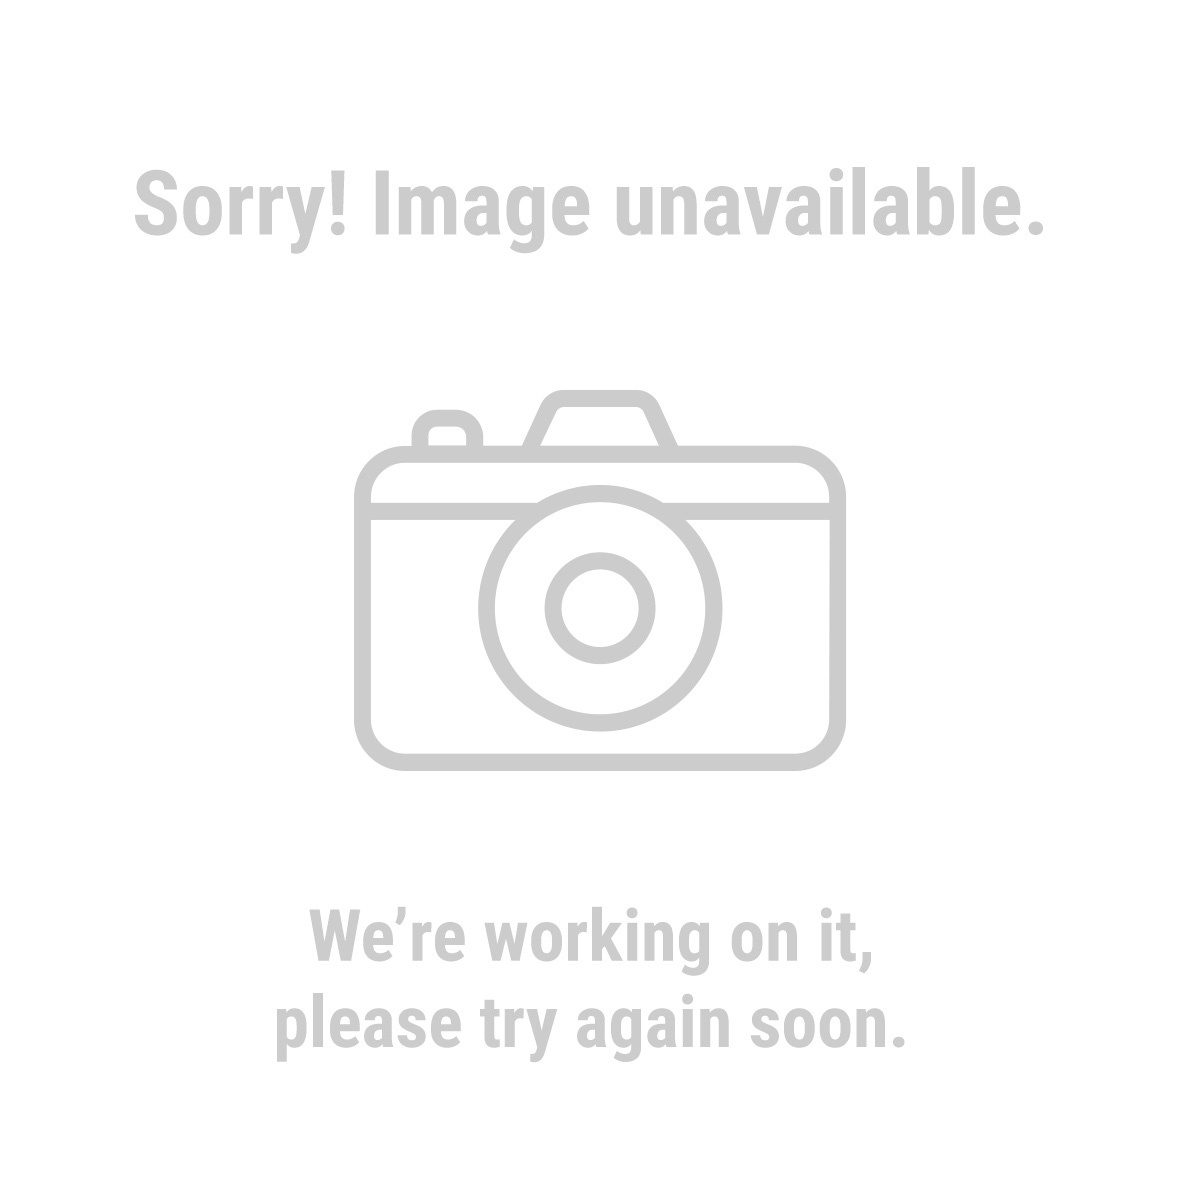 Central-Machinery 61487 17 In. Floor Mount Drill Press, 16 Speed